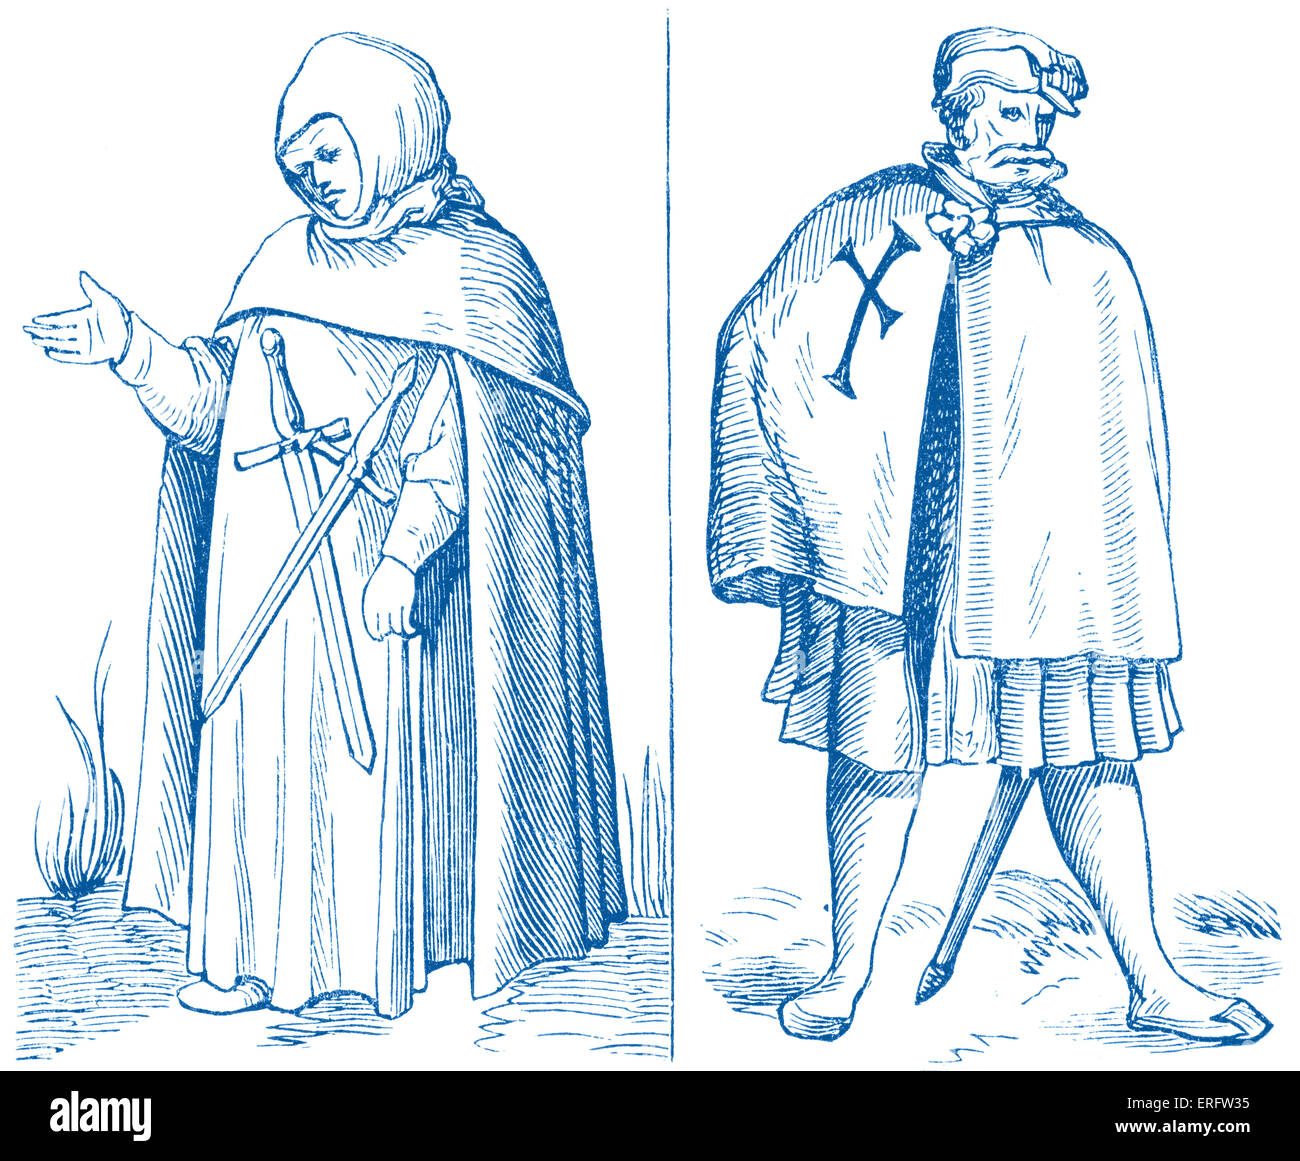 Medieval Teutonic knights. Woodcuts in the 'Cosmographic Universelle' of Munster 1552. - Stock Image